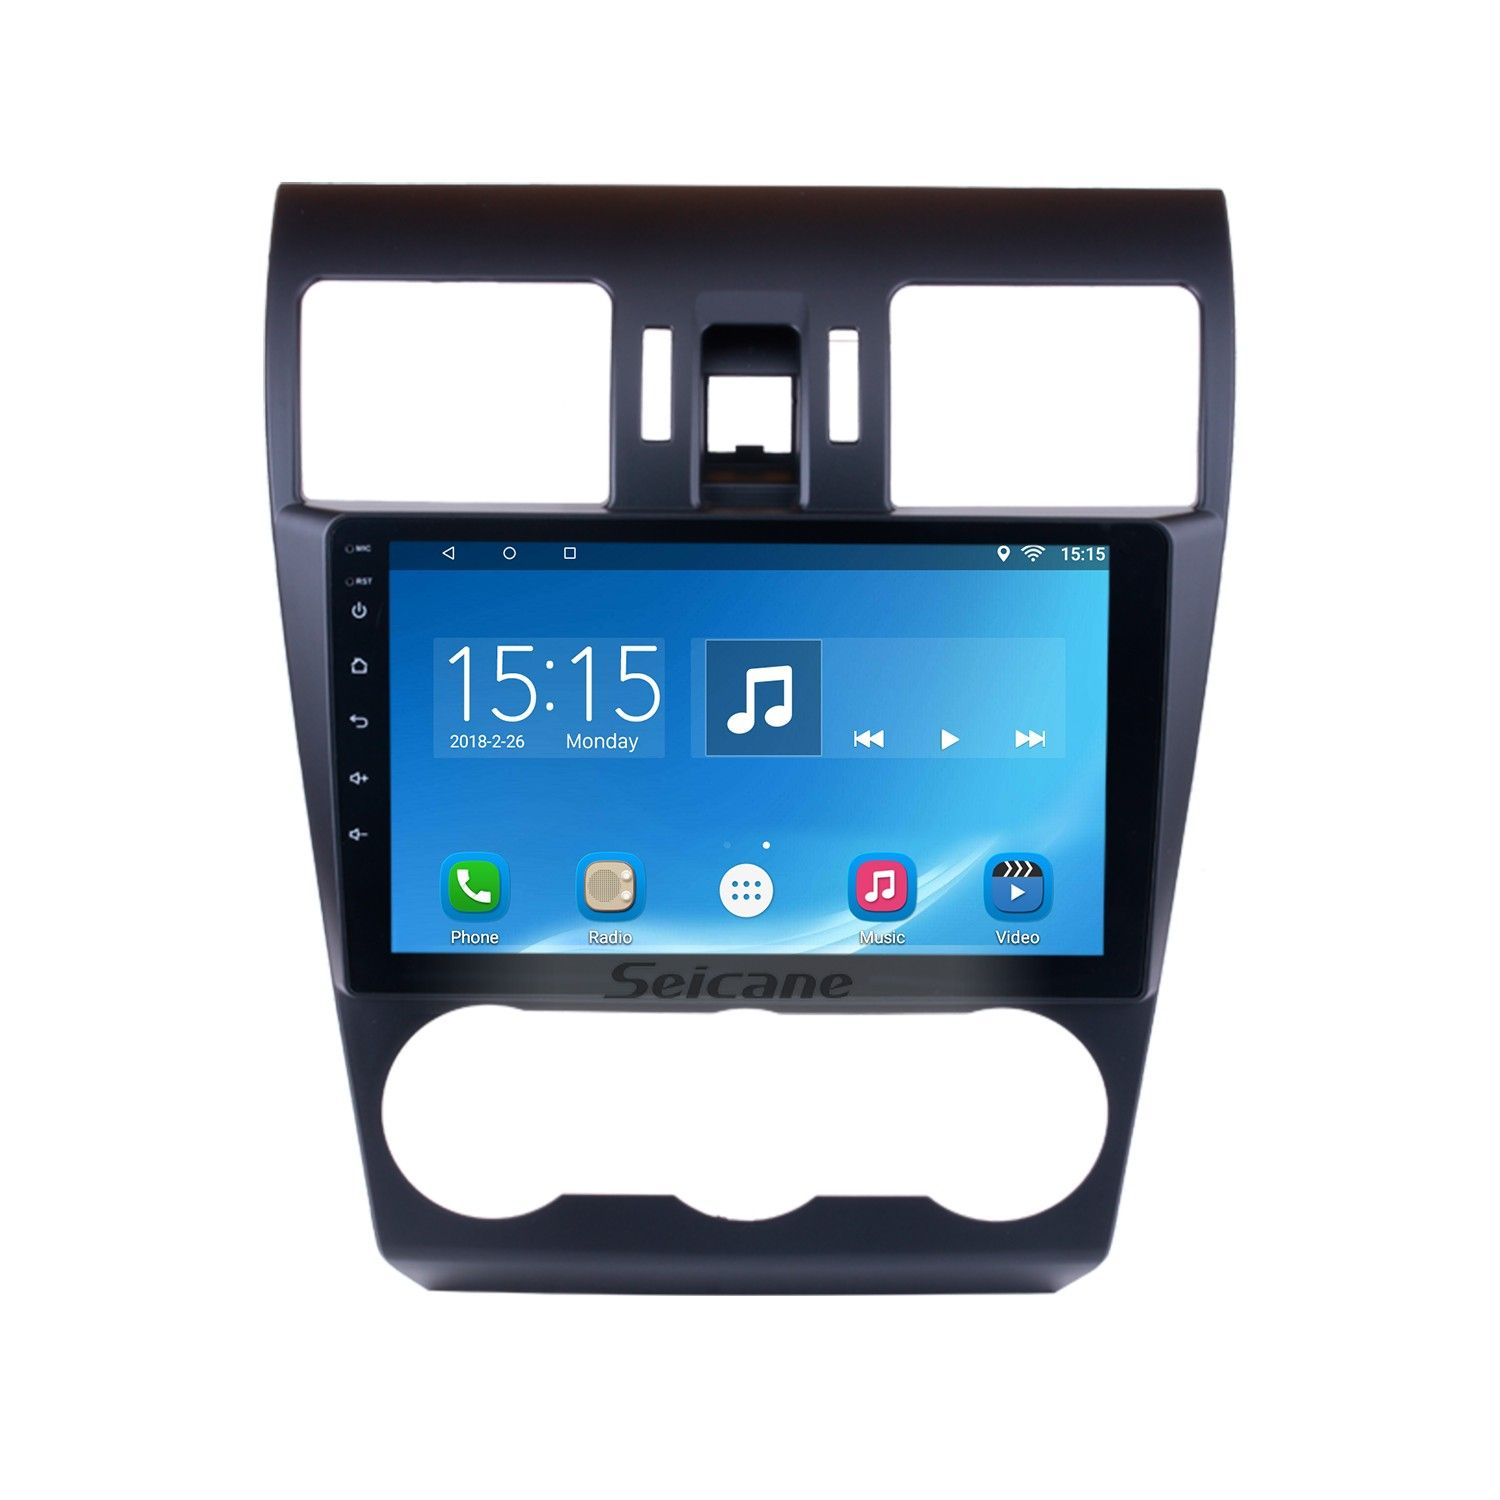 hight resolution of seicane 9 inch 2015 subaru forester android 6 0 radio gps navigation system